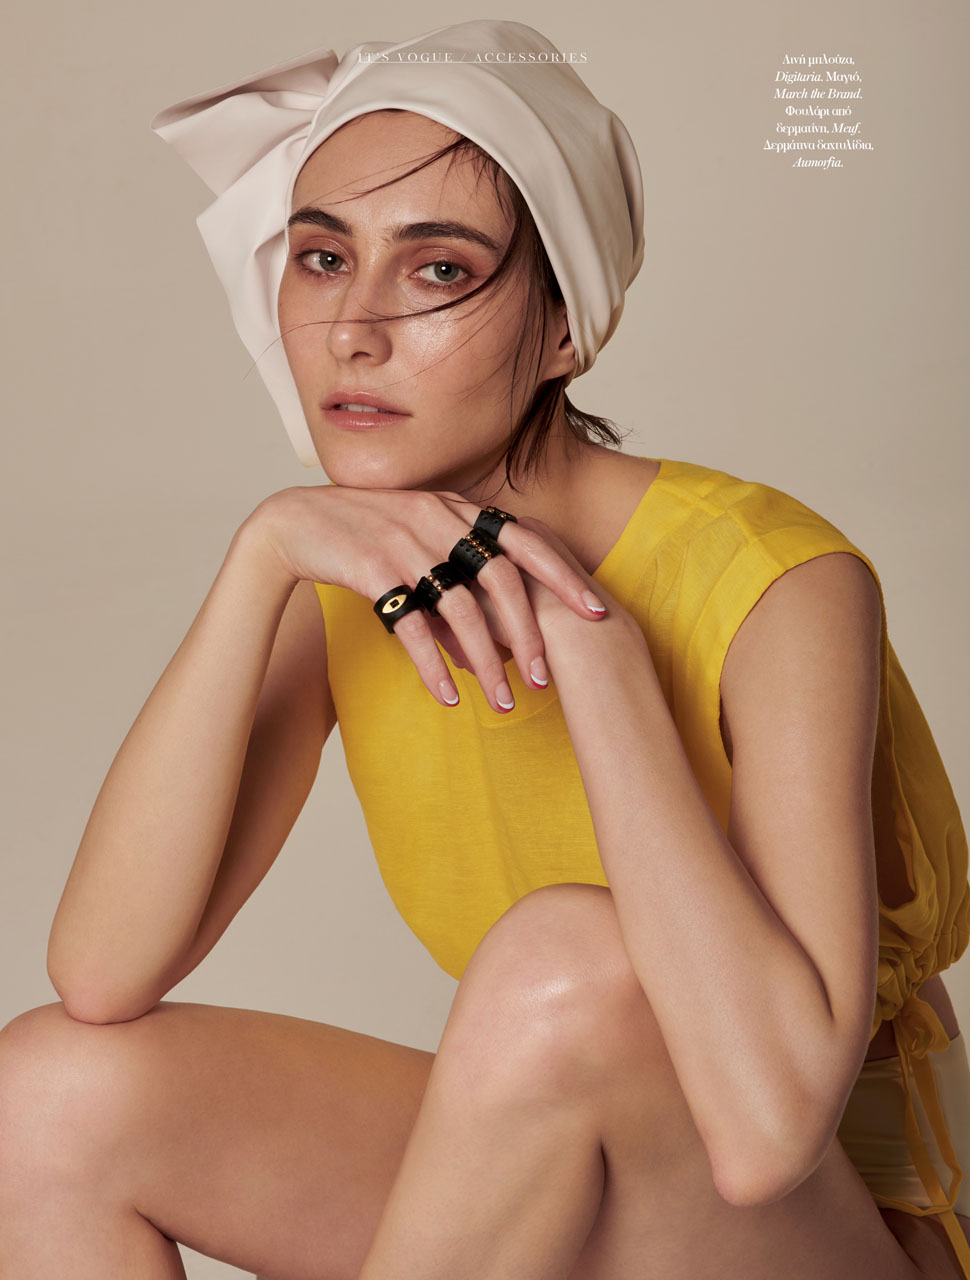 Angeliki Tsionou for Vogue